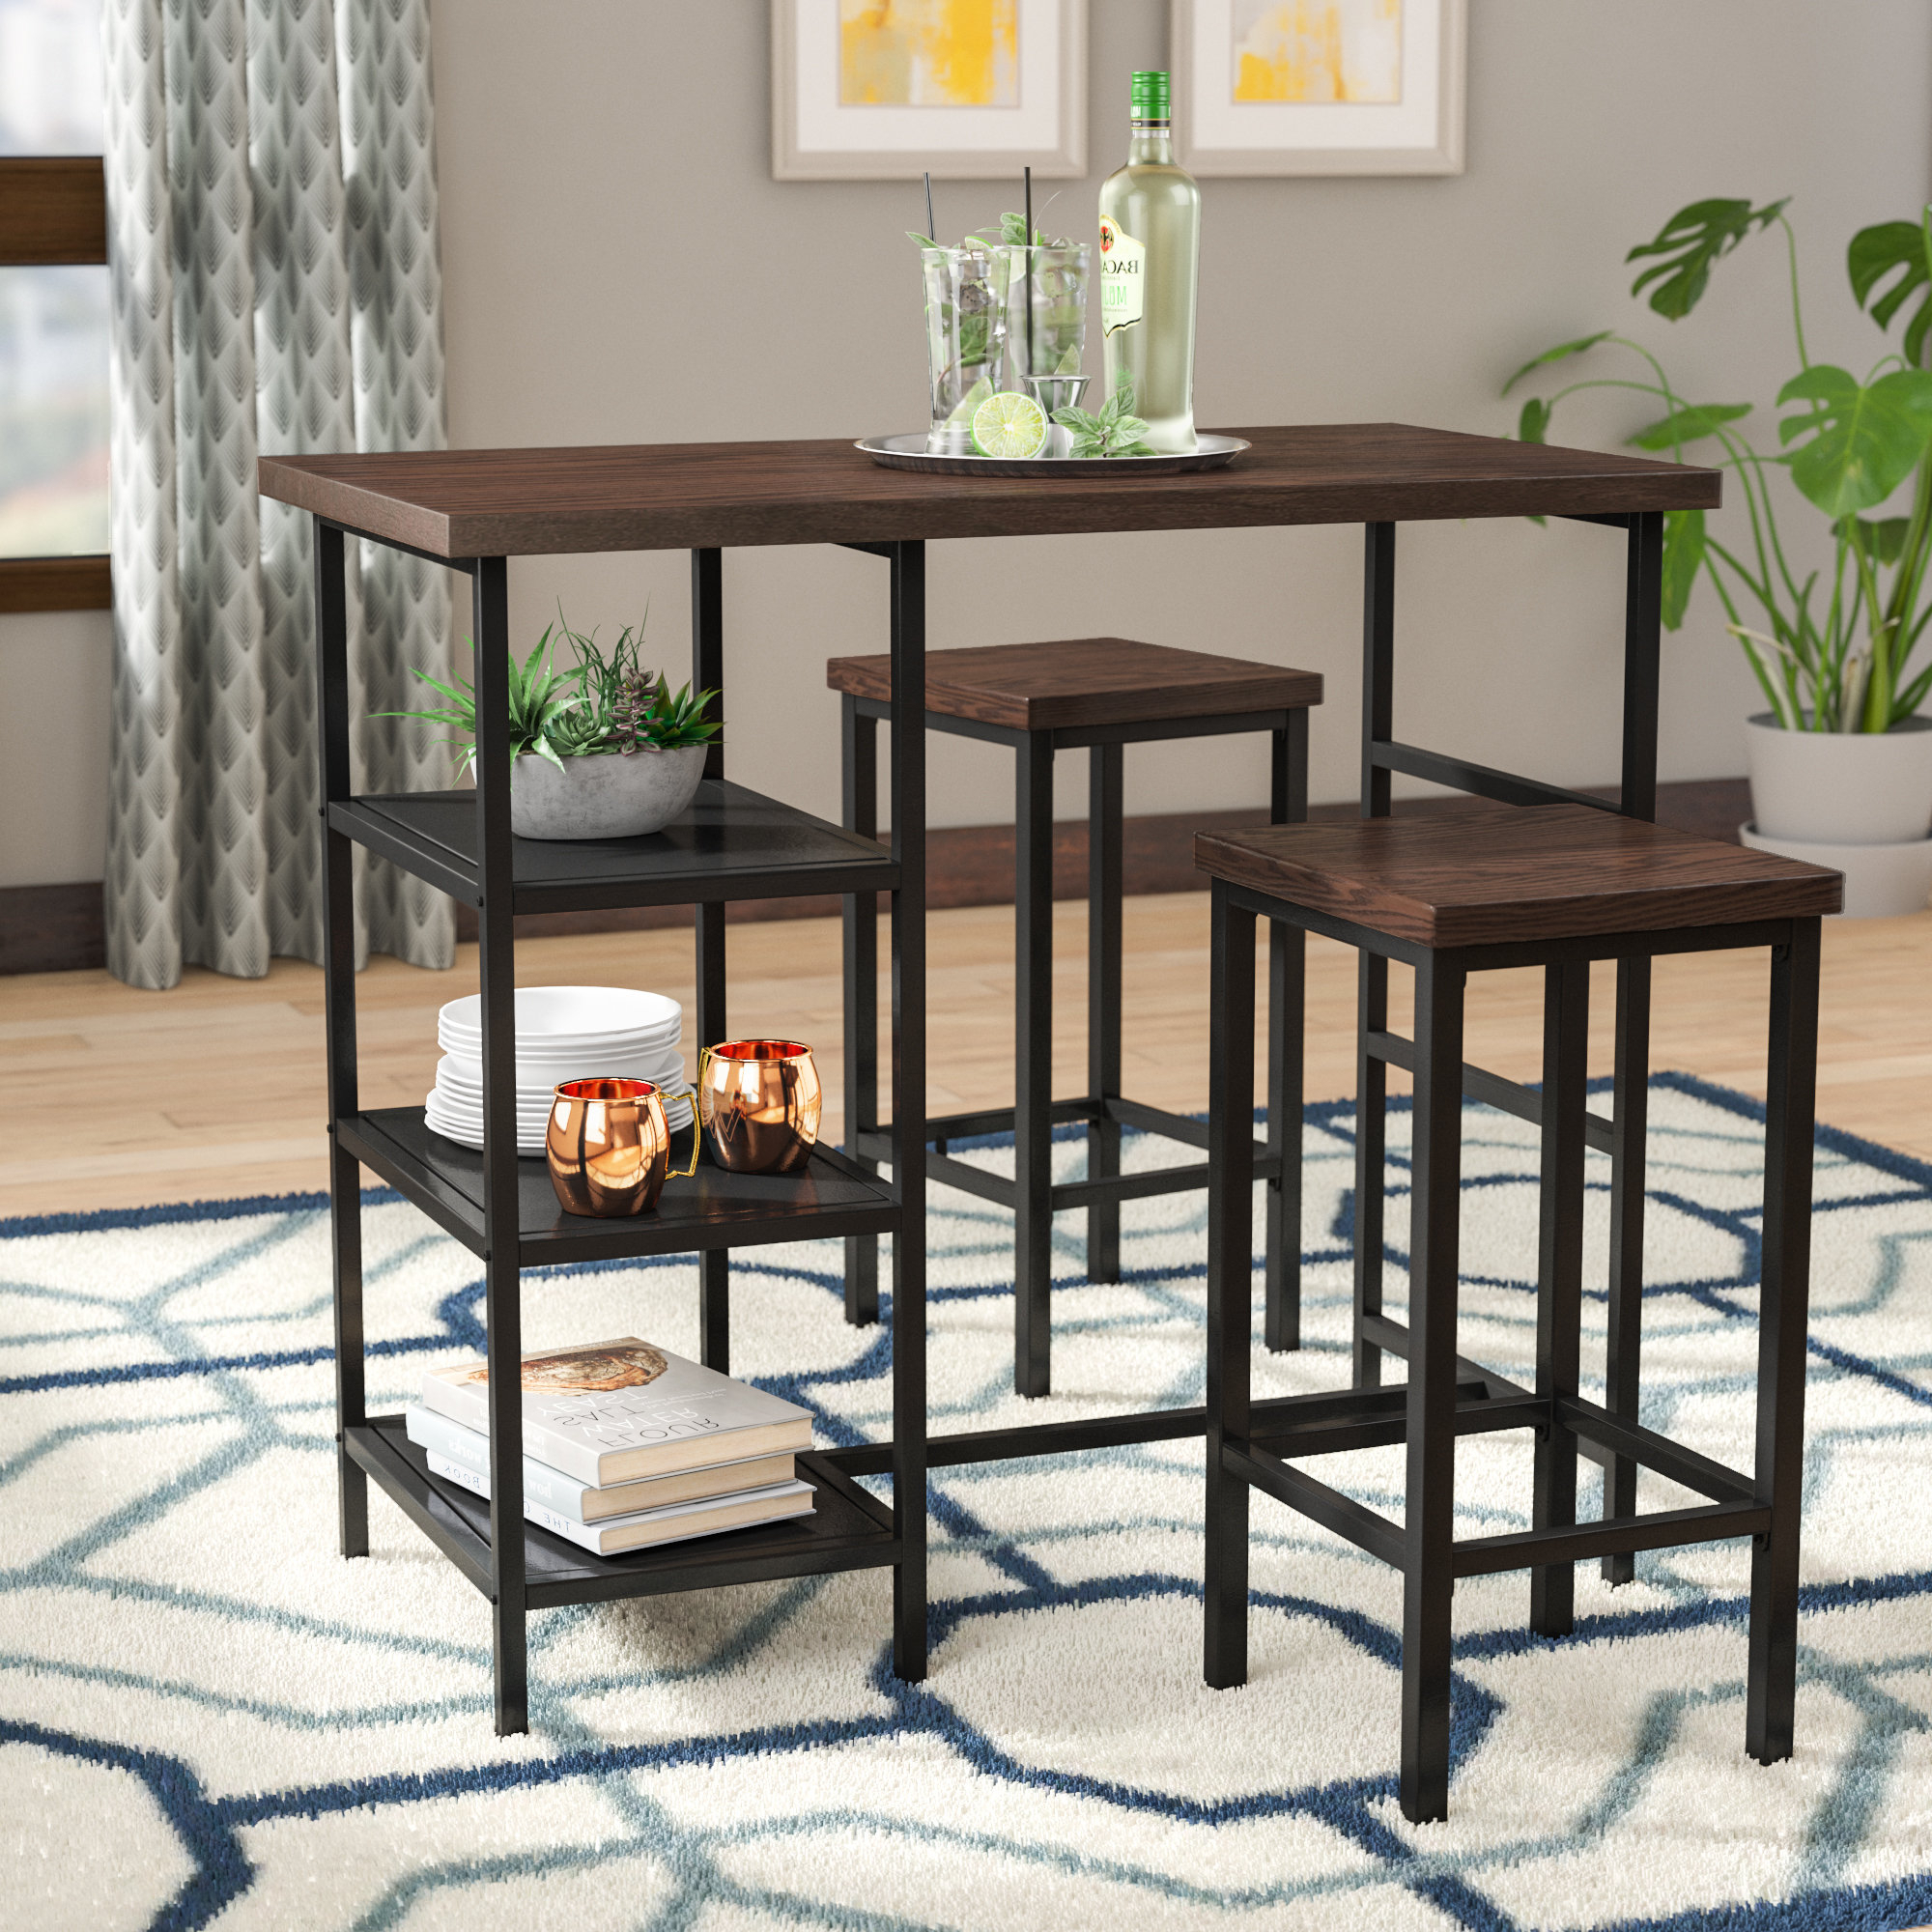 Preferred Ligon 3 Piece Breakfast Nook Dining Sets Regarding 3 Piece Kitchen & Dining Room Sets You'll Love In  (View 16 of 20)